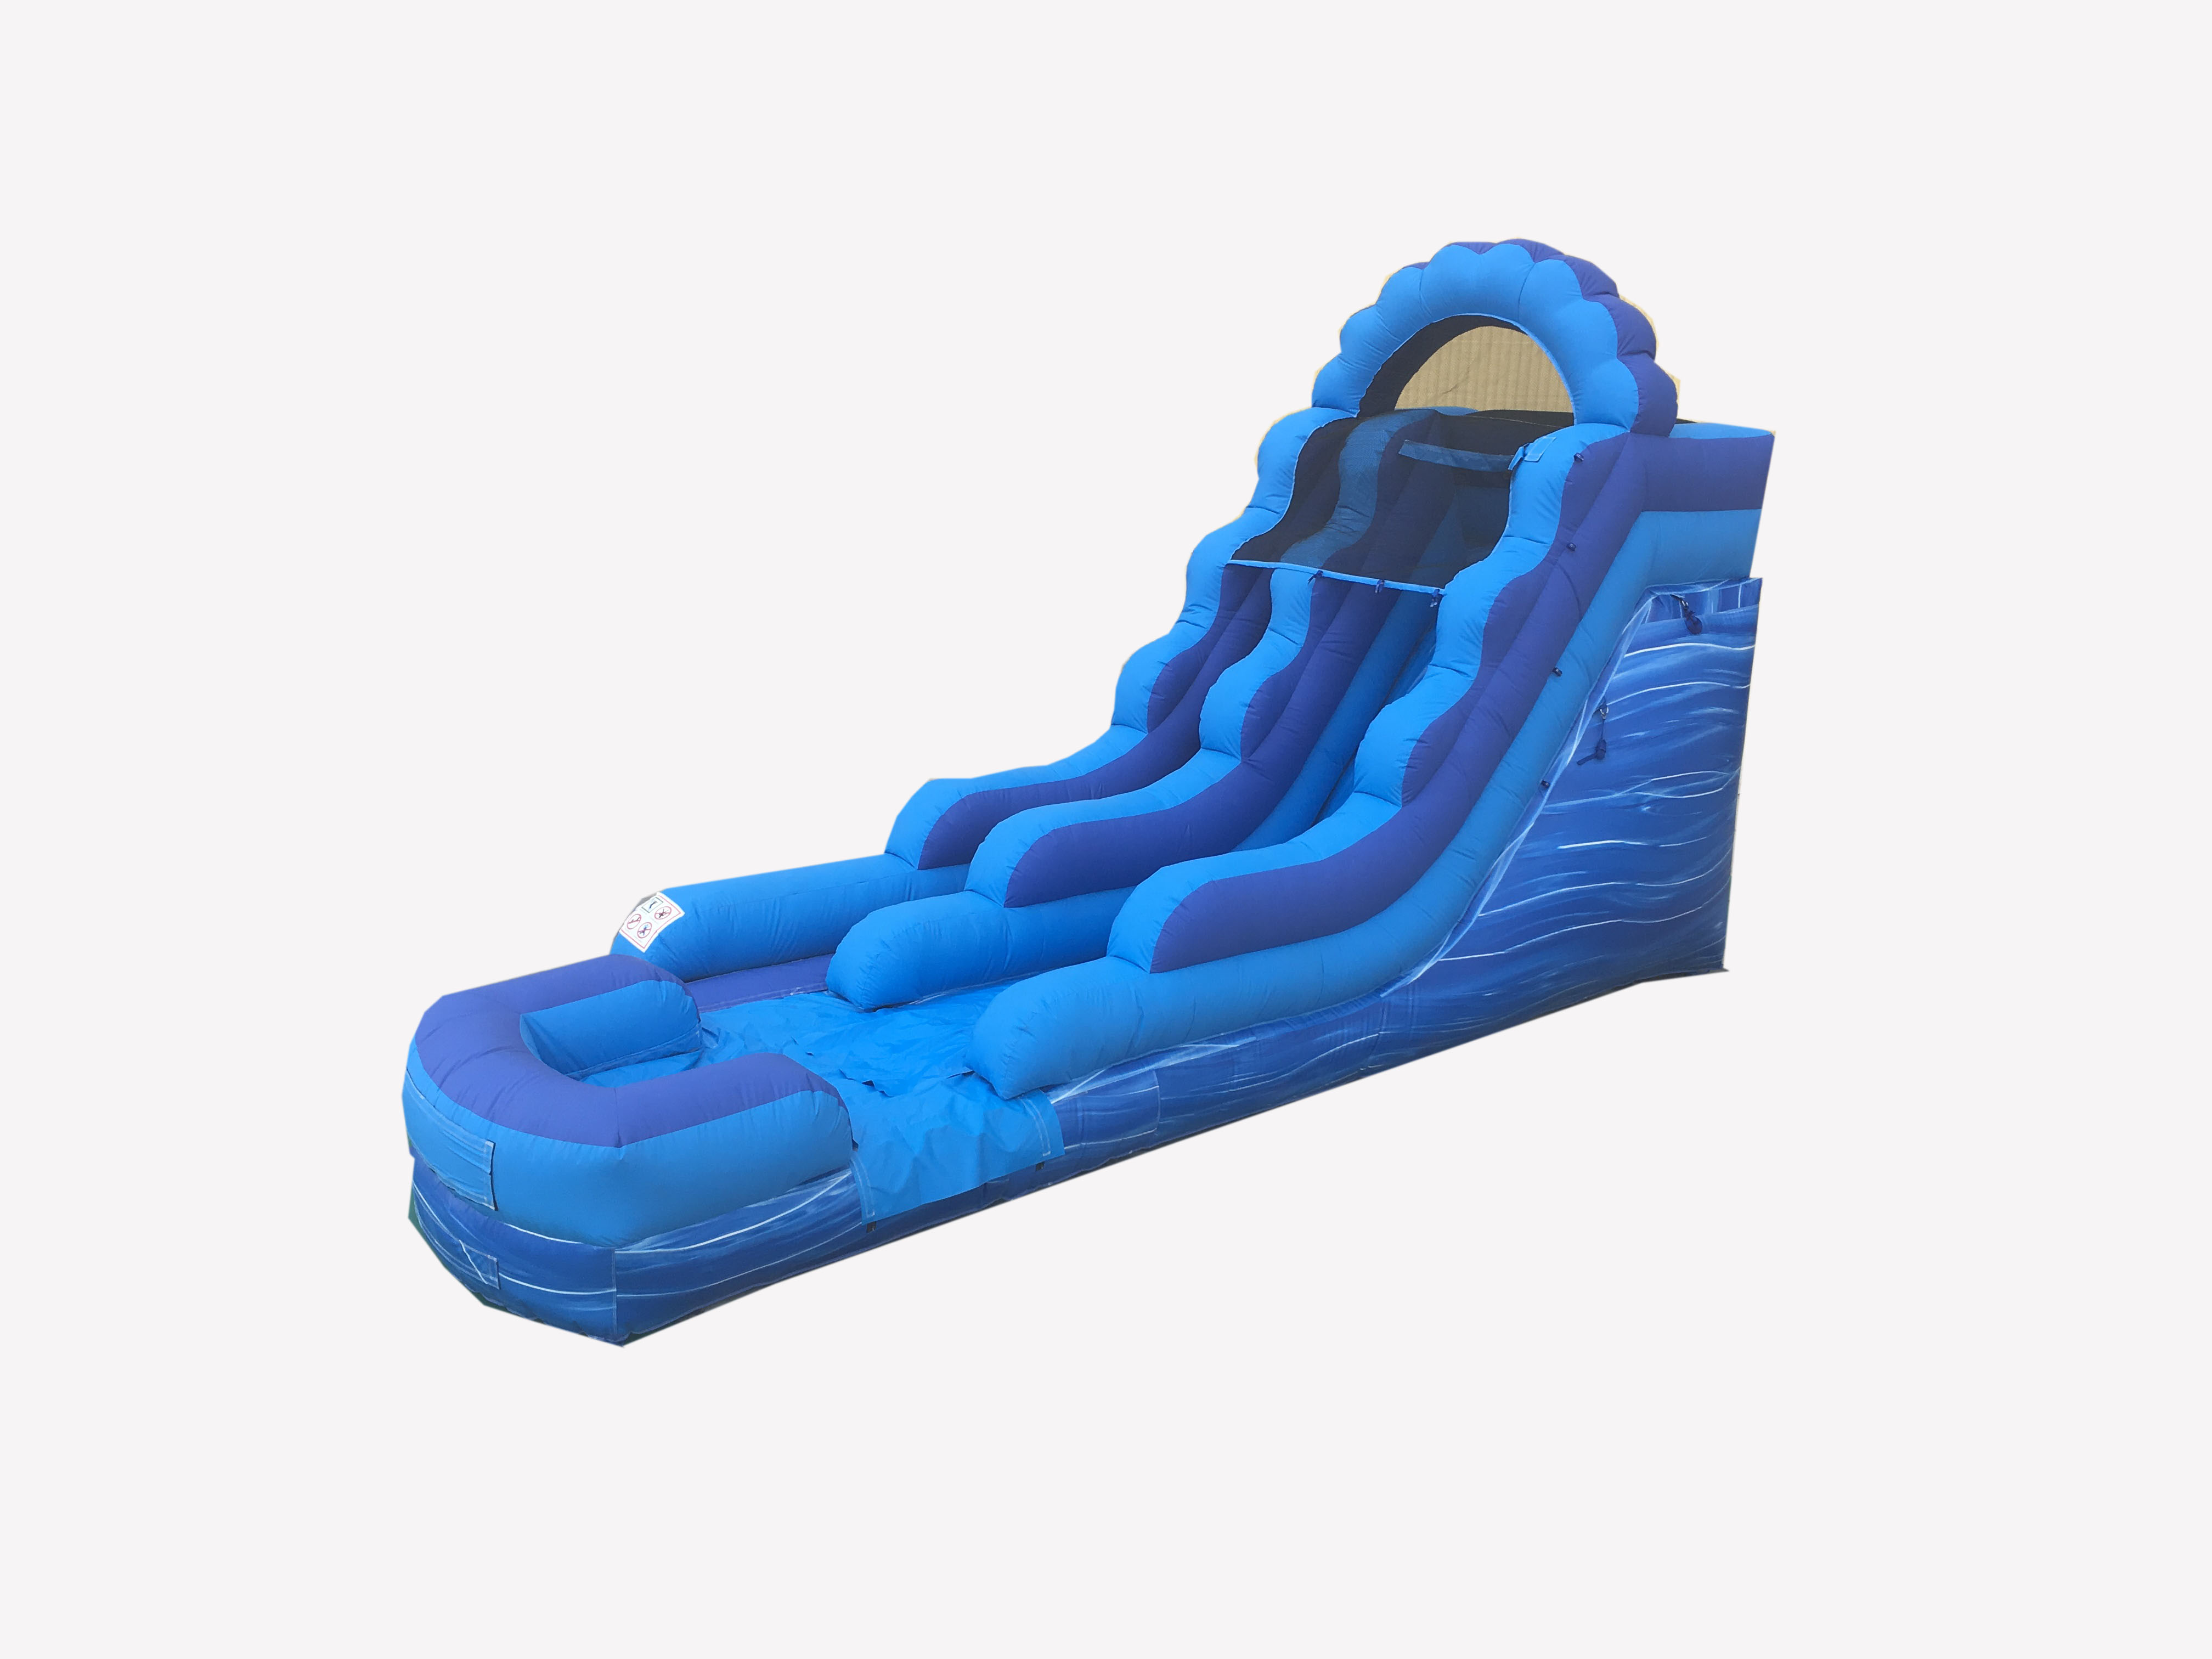 Click here to buy Pogo 15' Blue Marble Commercial Inflatable Waterslide with Blower Kids Bouncy Jumper by Pogo Bounce House.